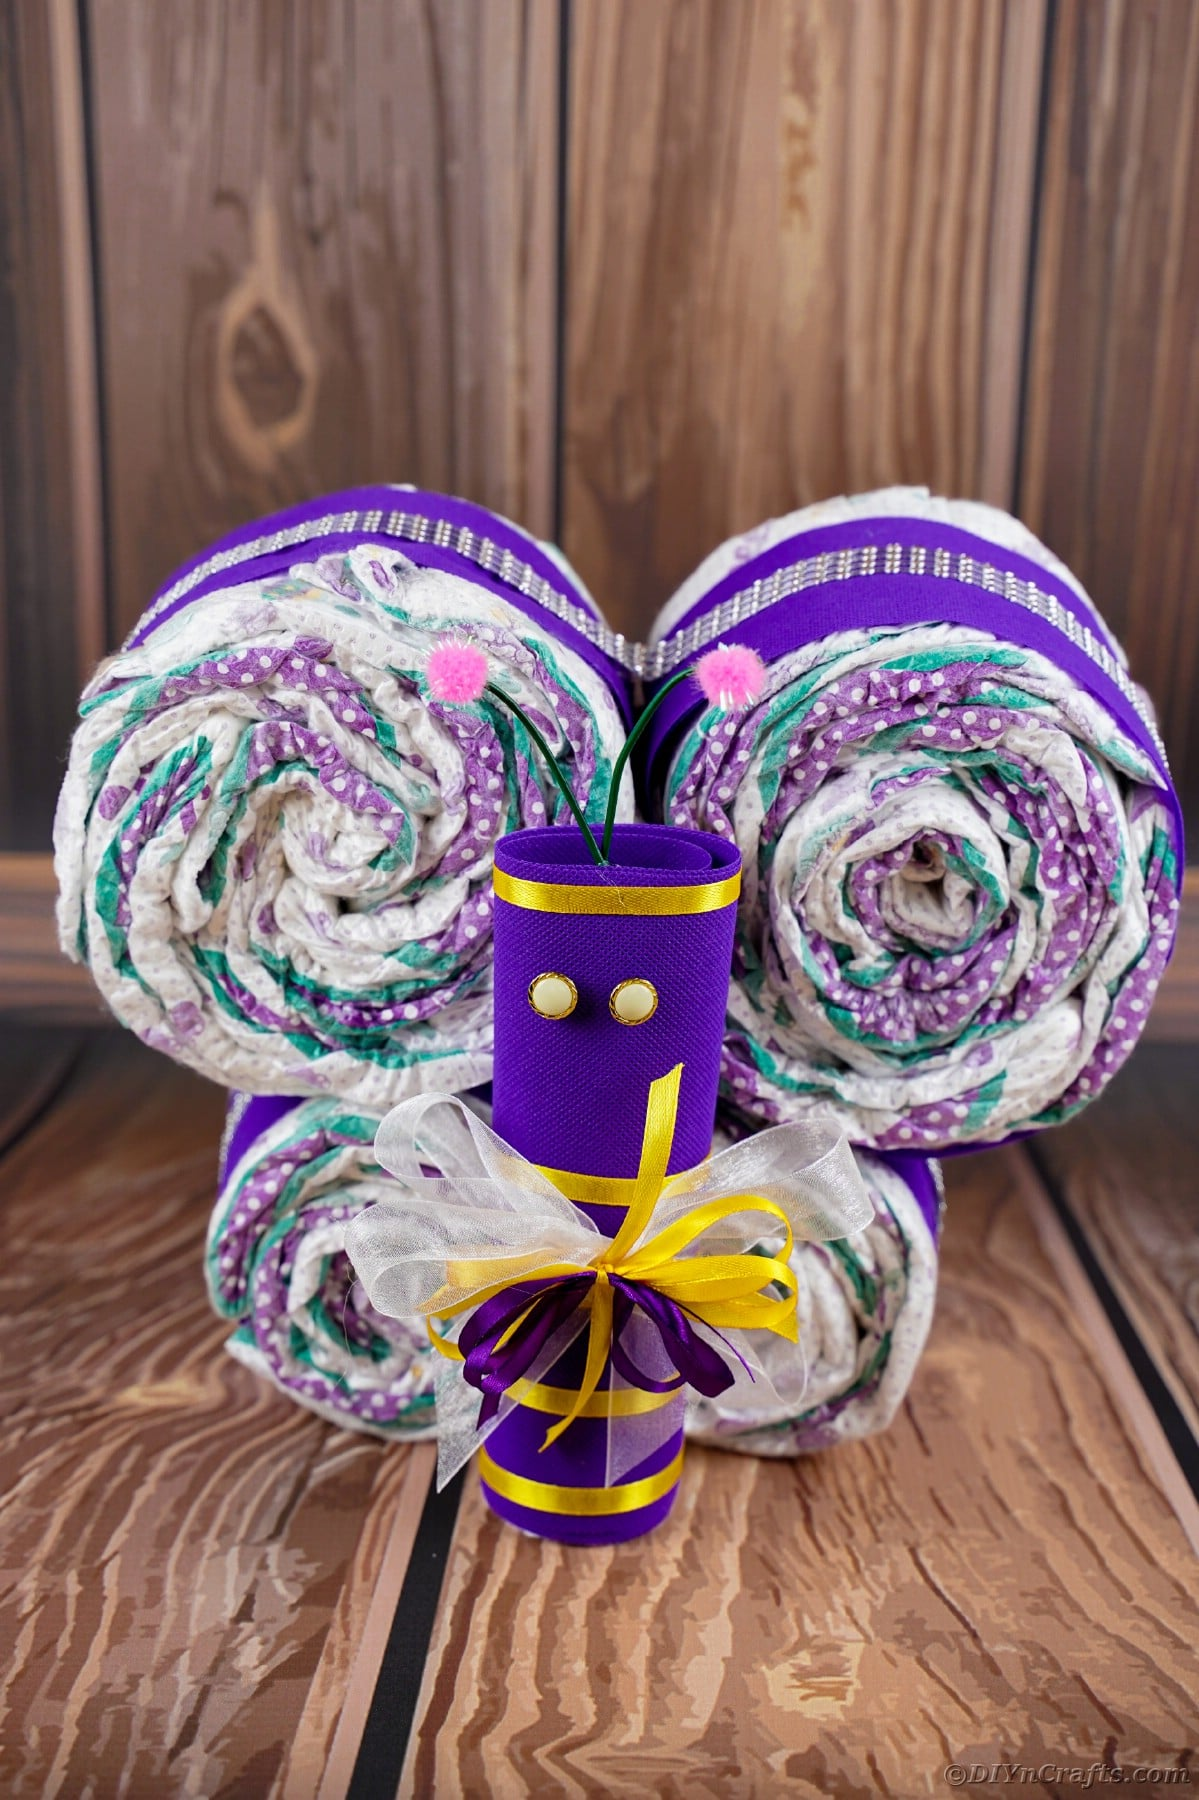 Diaper butterfly with purple body and yellow accents